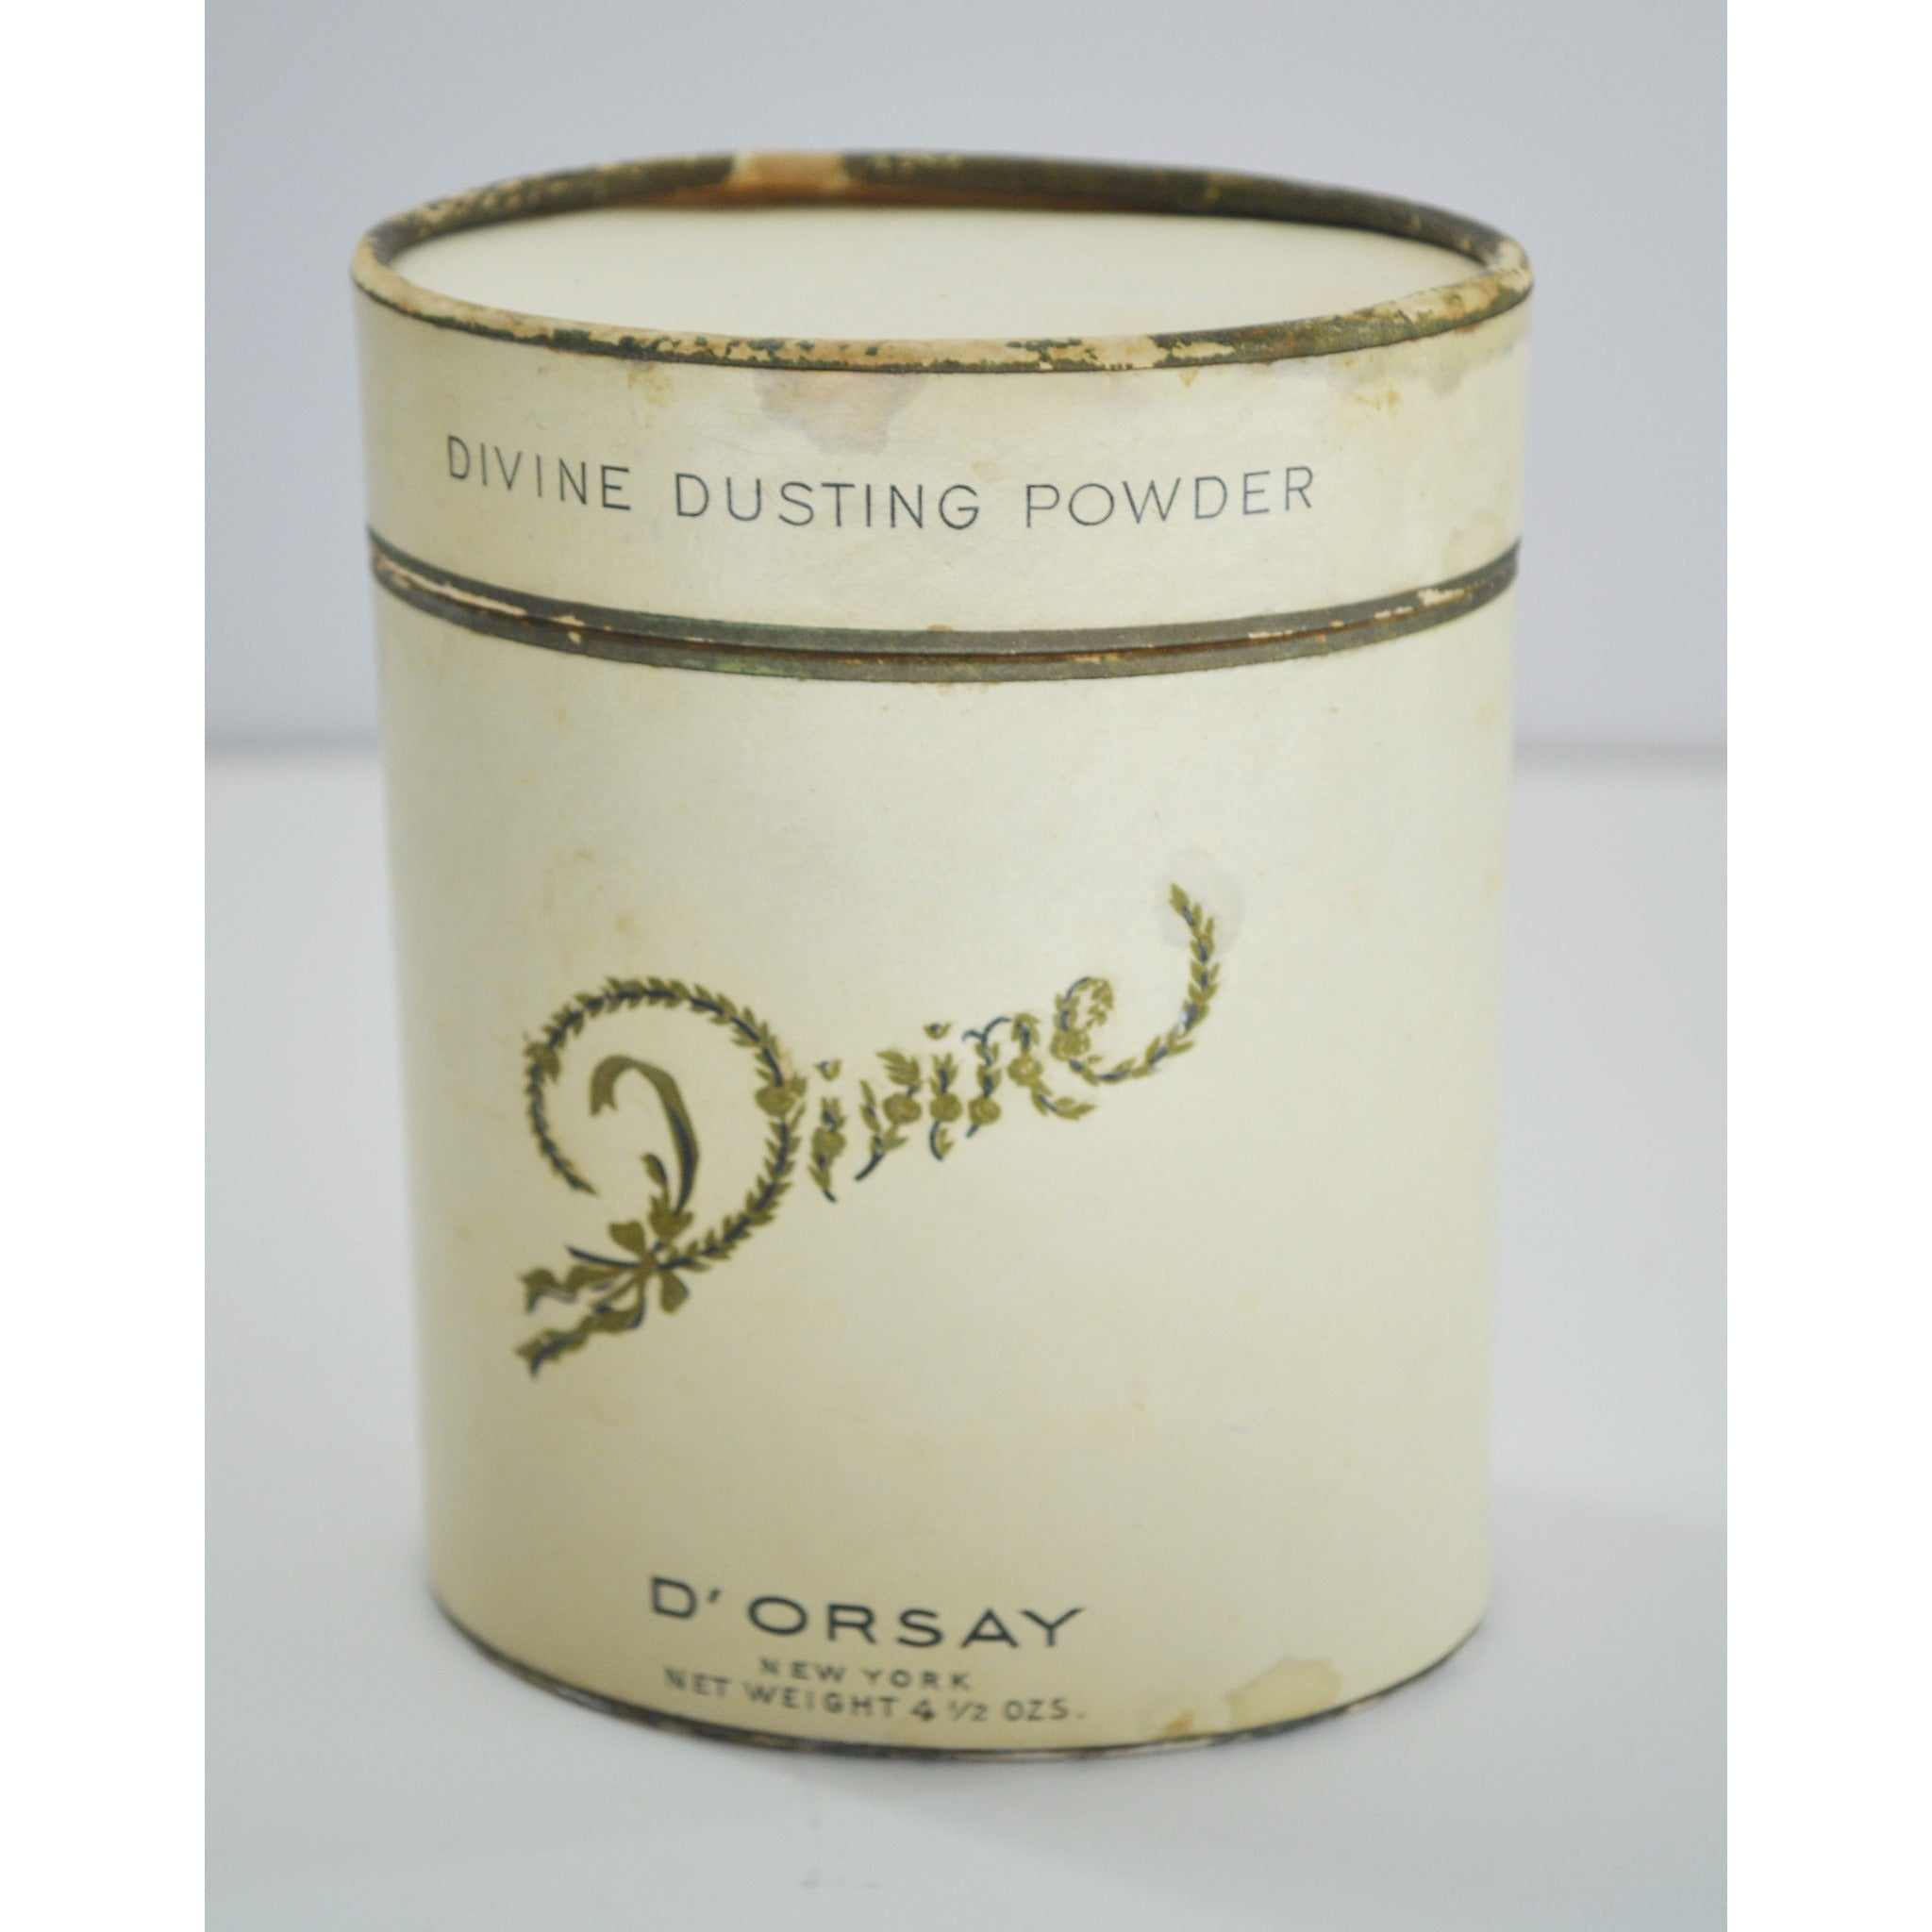 Vintage Divine Dusting Powder By D'Orsay